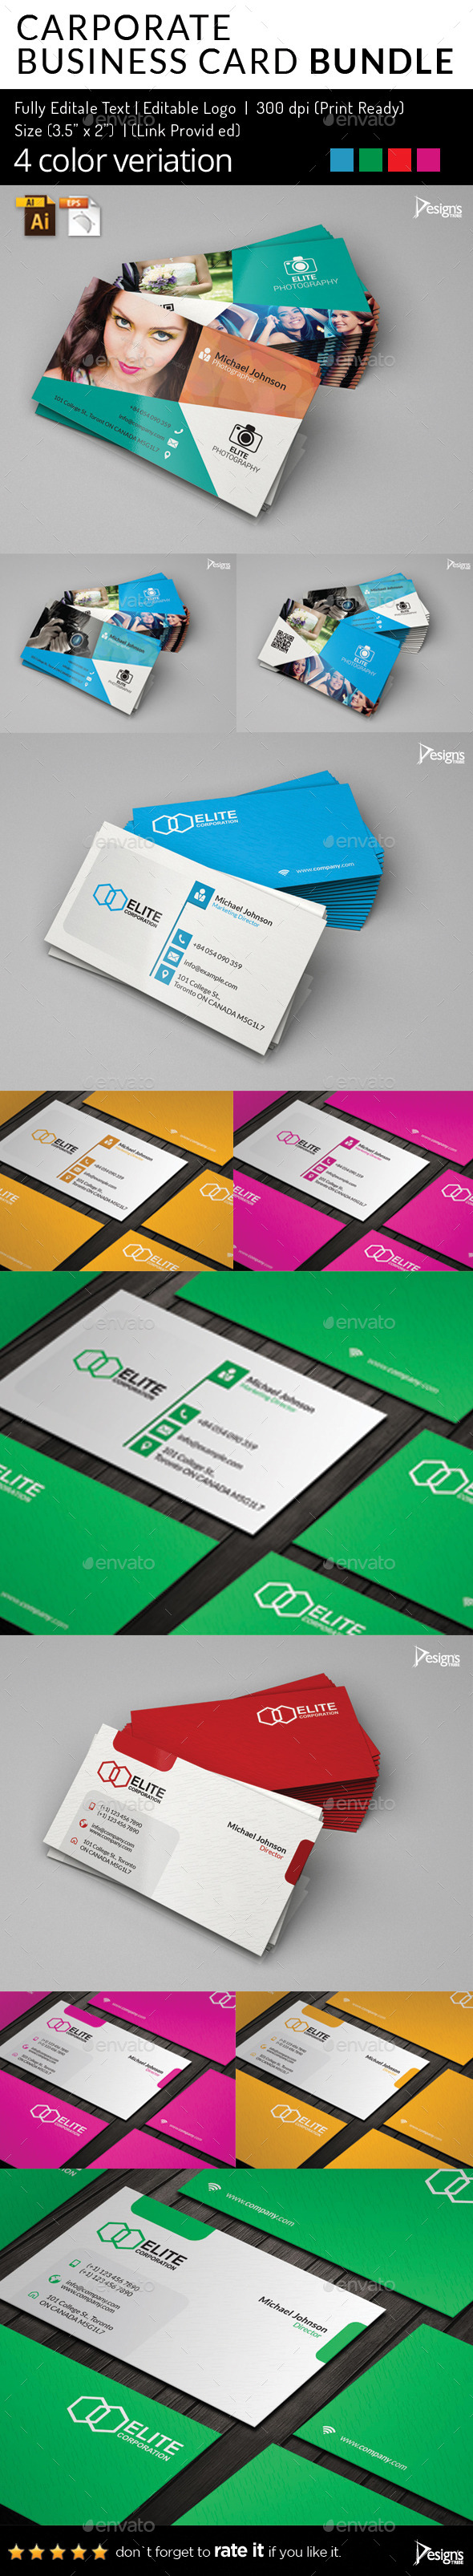 Business Card Pack - Business Cards Print Templates